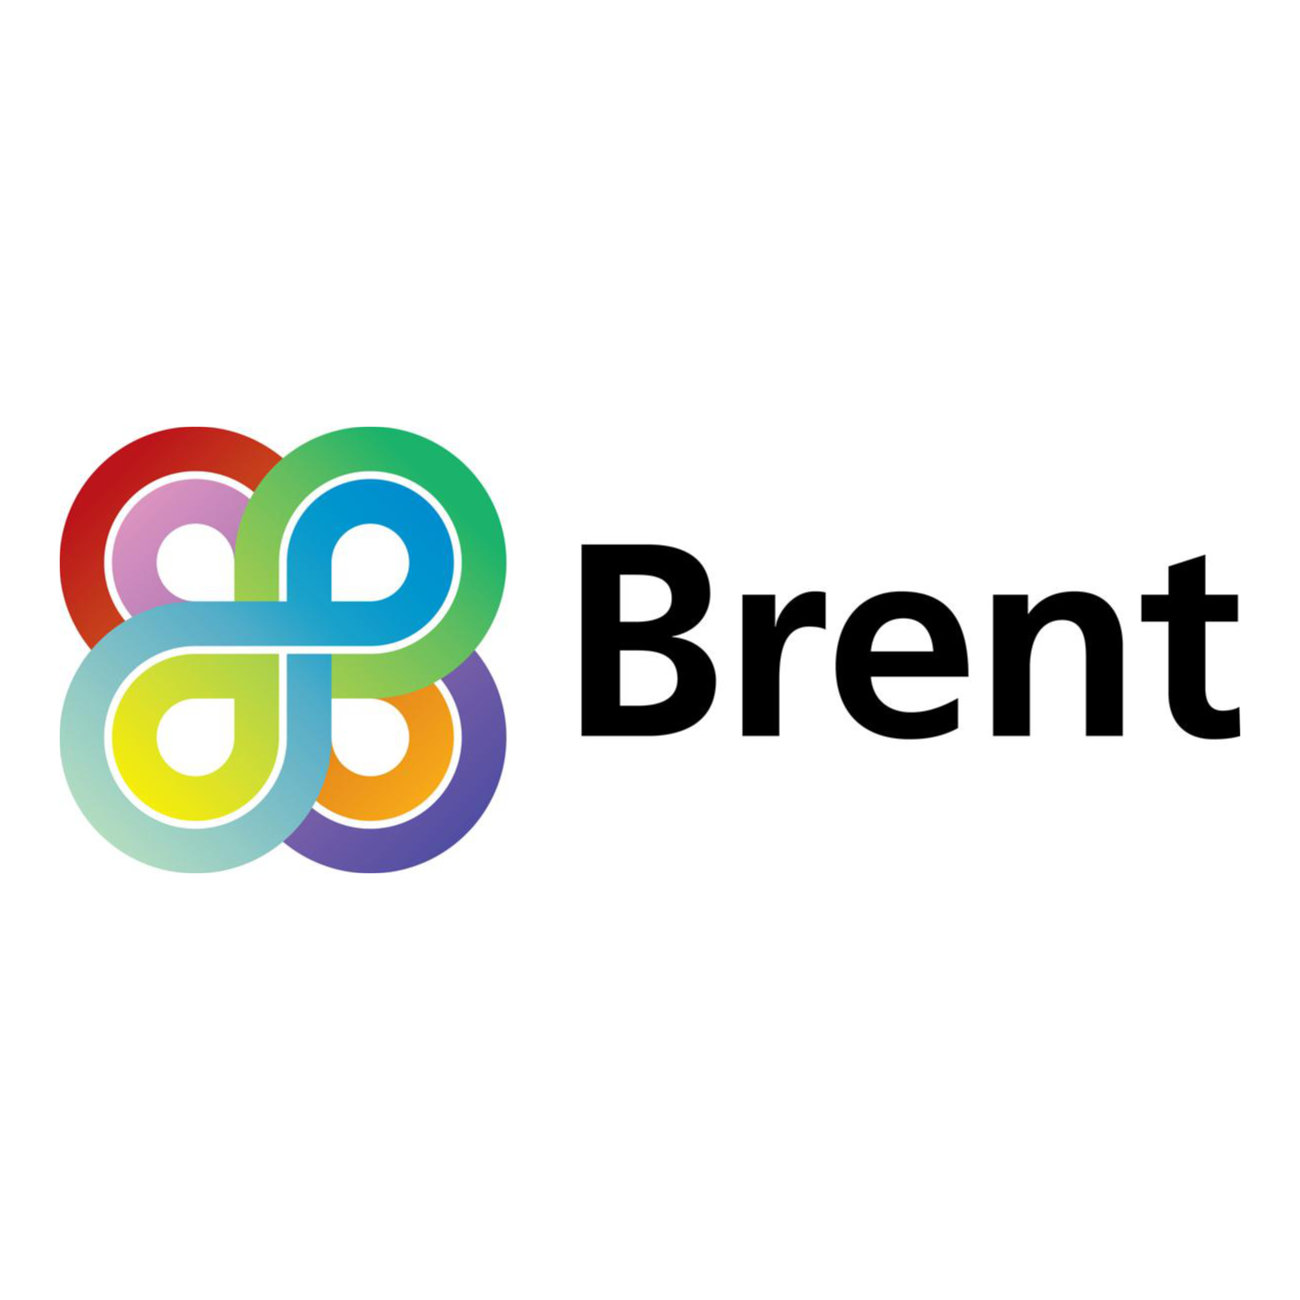 The new logo for Brent Council